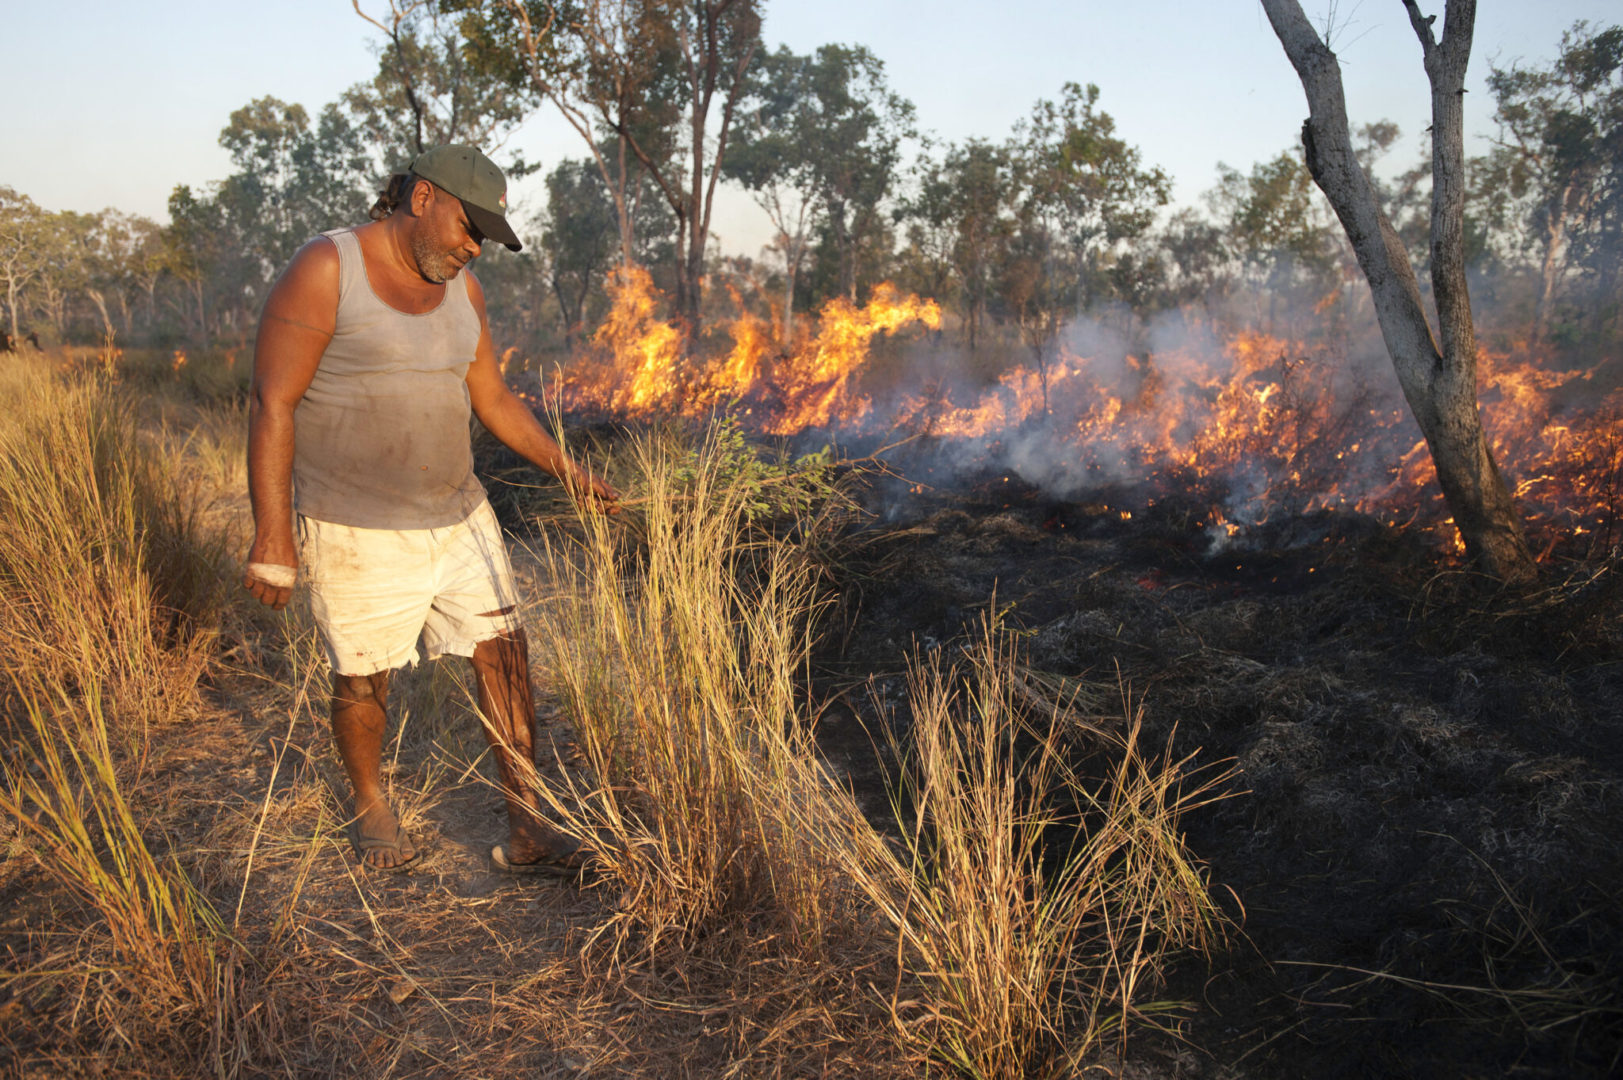 Field Burning damages soil and increases carbon emissions